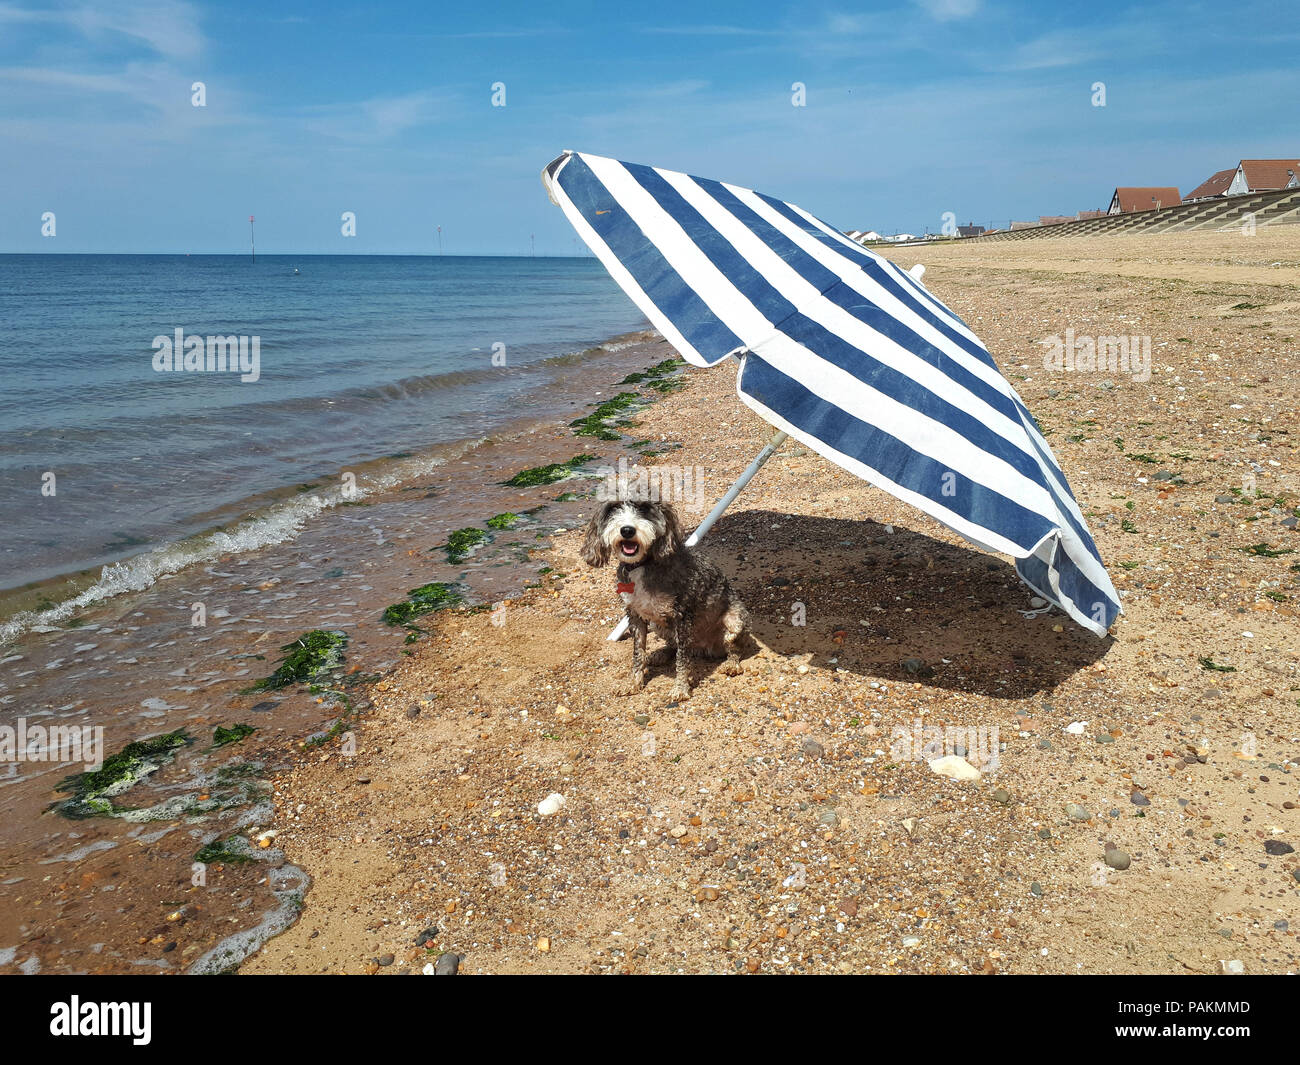 Heacham, Norfolk, UK. 23rd July, 2018. Cookie the cockapoo dog enjoys the hot weather, as warnings are given about the continued heatwave, with an umbrella beside the sea at Heacham, Norfolk, on July 23, 2018. Credit: Paul Marriott/Alamy Live News Stock Photo